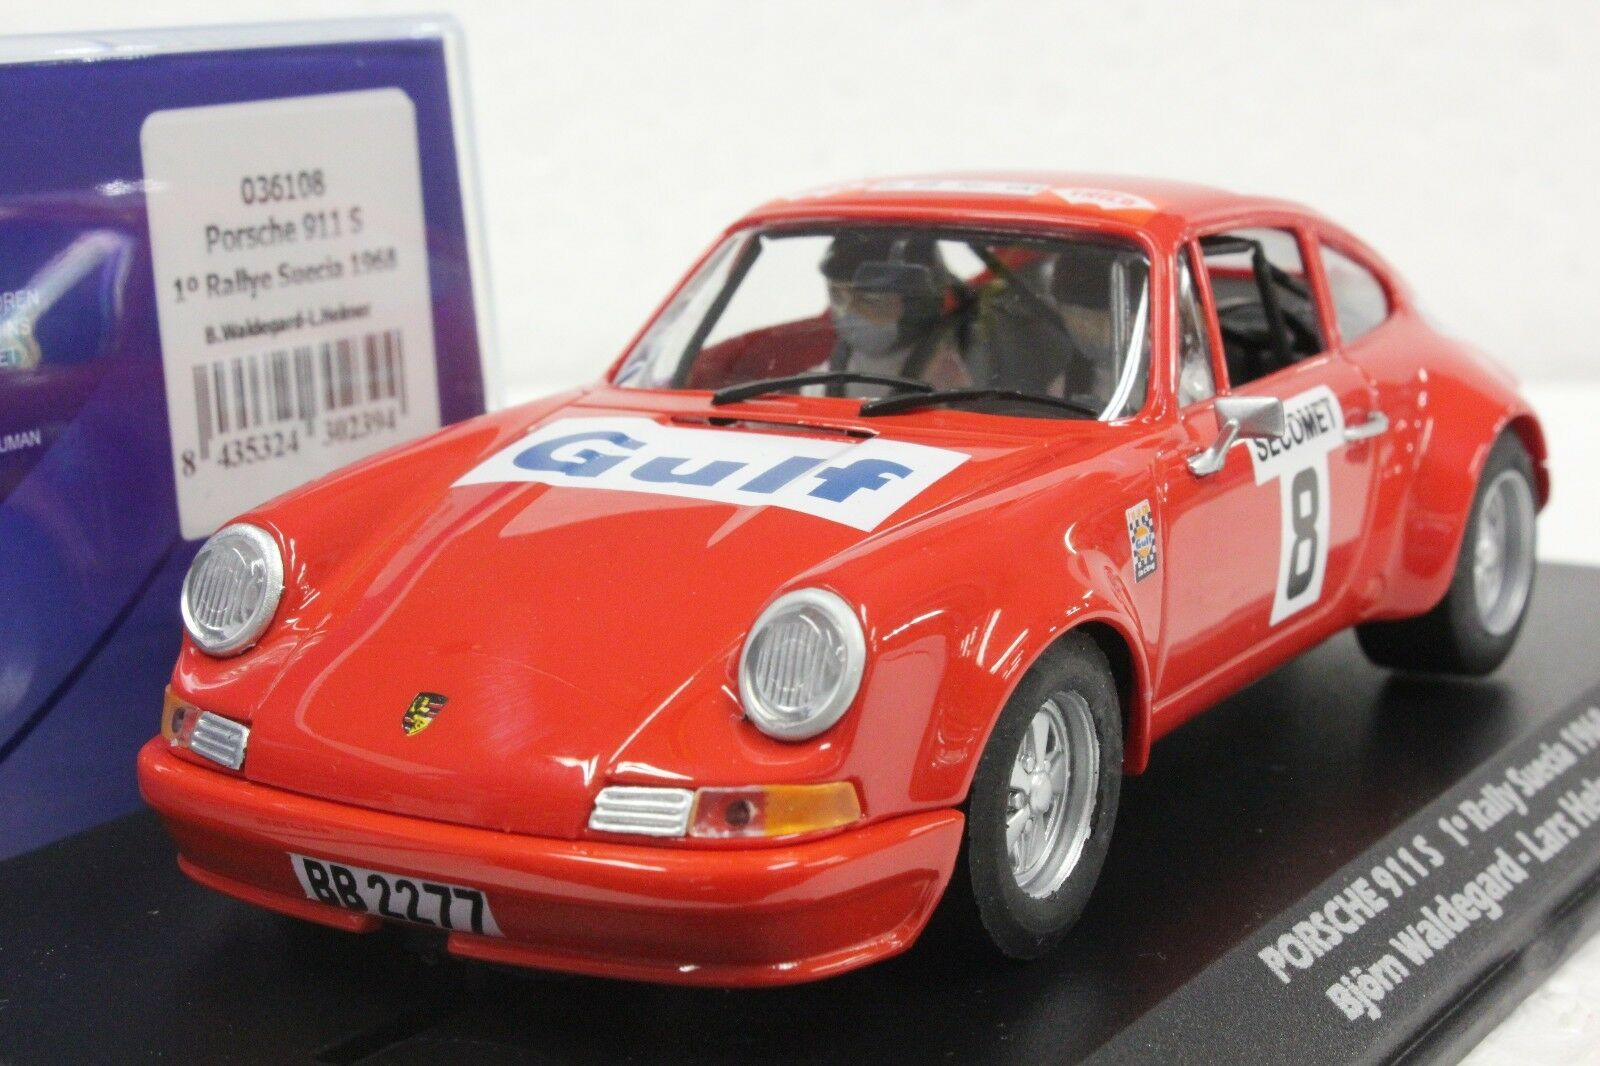 FLY 036108 PORSCHE 911 S 1ST PLACE RALLY SUECIA '68 NEW 1 32 SLOT CAR IN DISPLAY